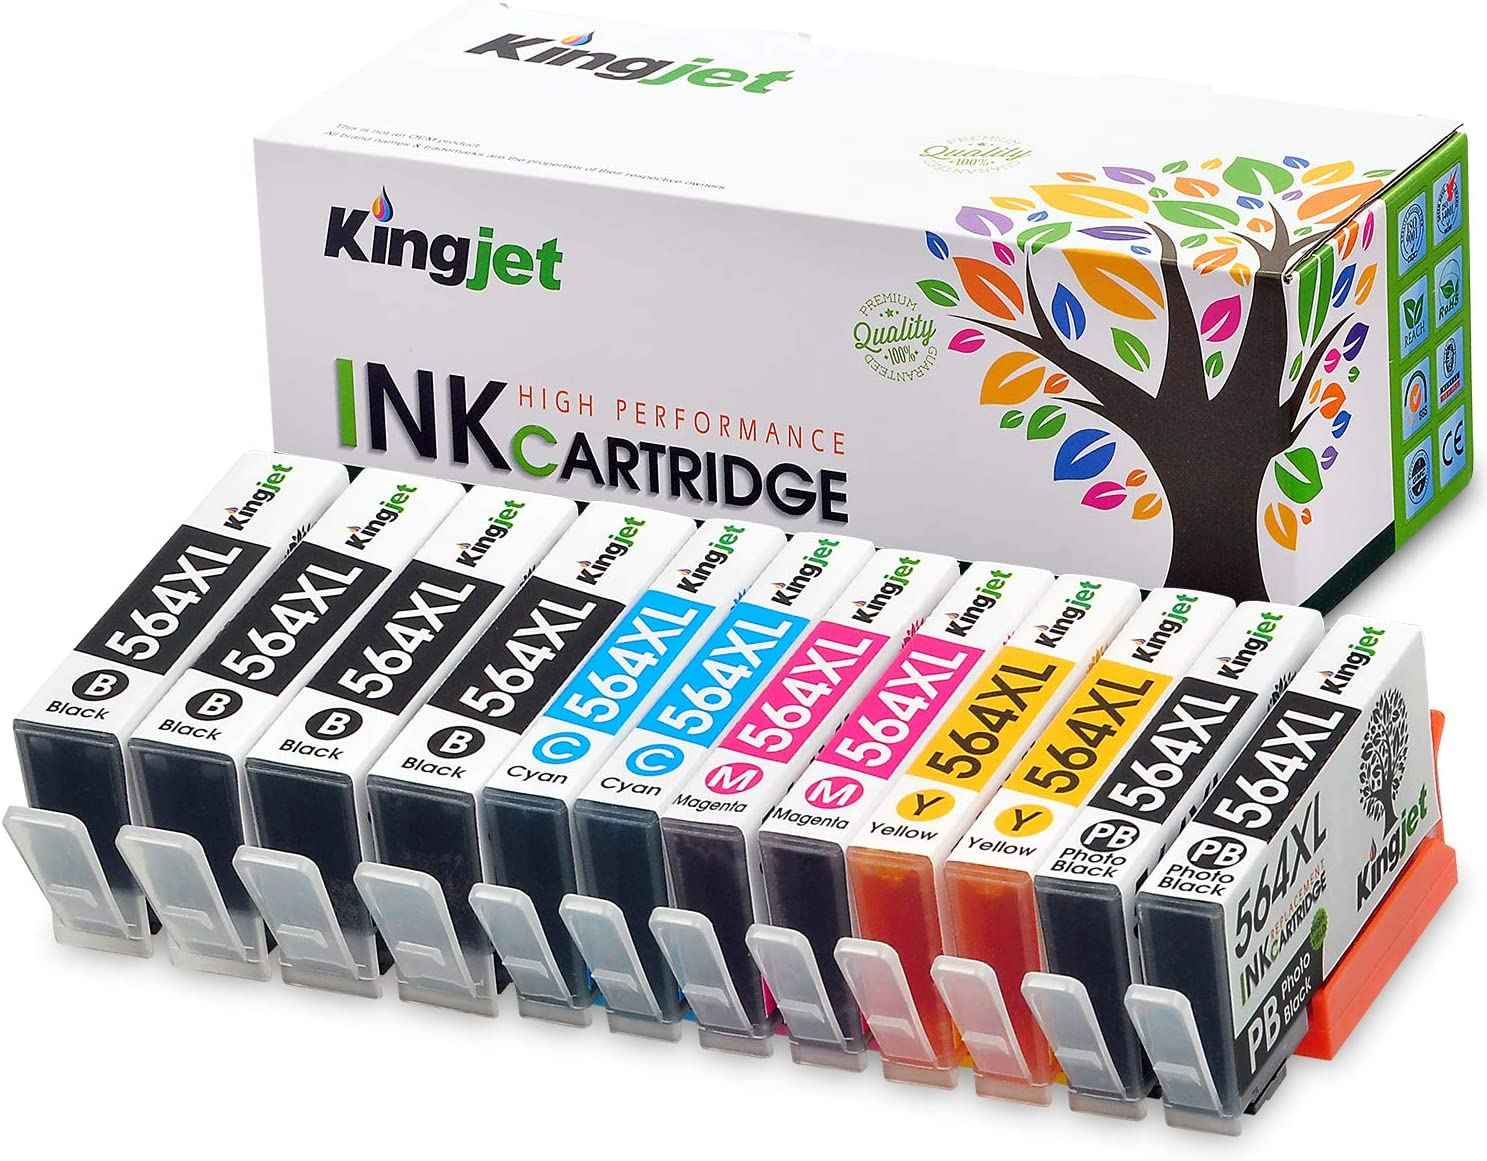 Kingjet Compatible Replacements for 564XL Ink Cartridge 5 Color Work for Photosmart 7510 7515 7520 7525 B8550 C6380 D5460 D7560 C309a (2 Set + 2 Large Black)